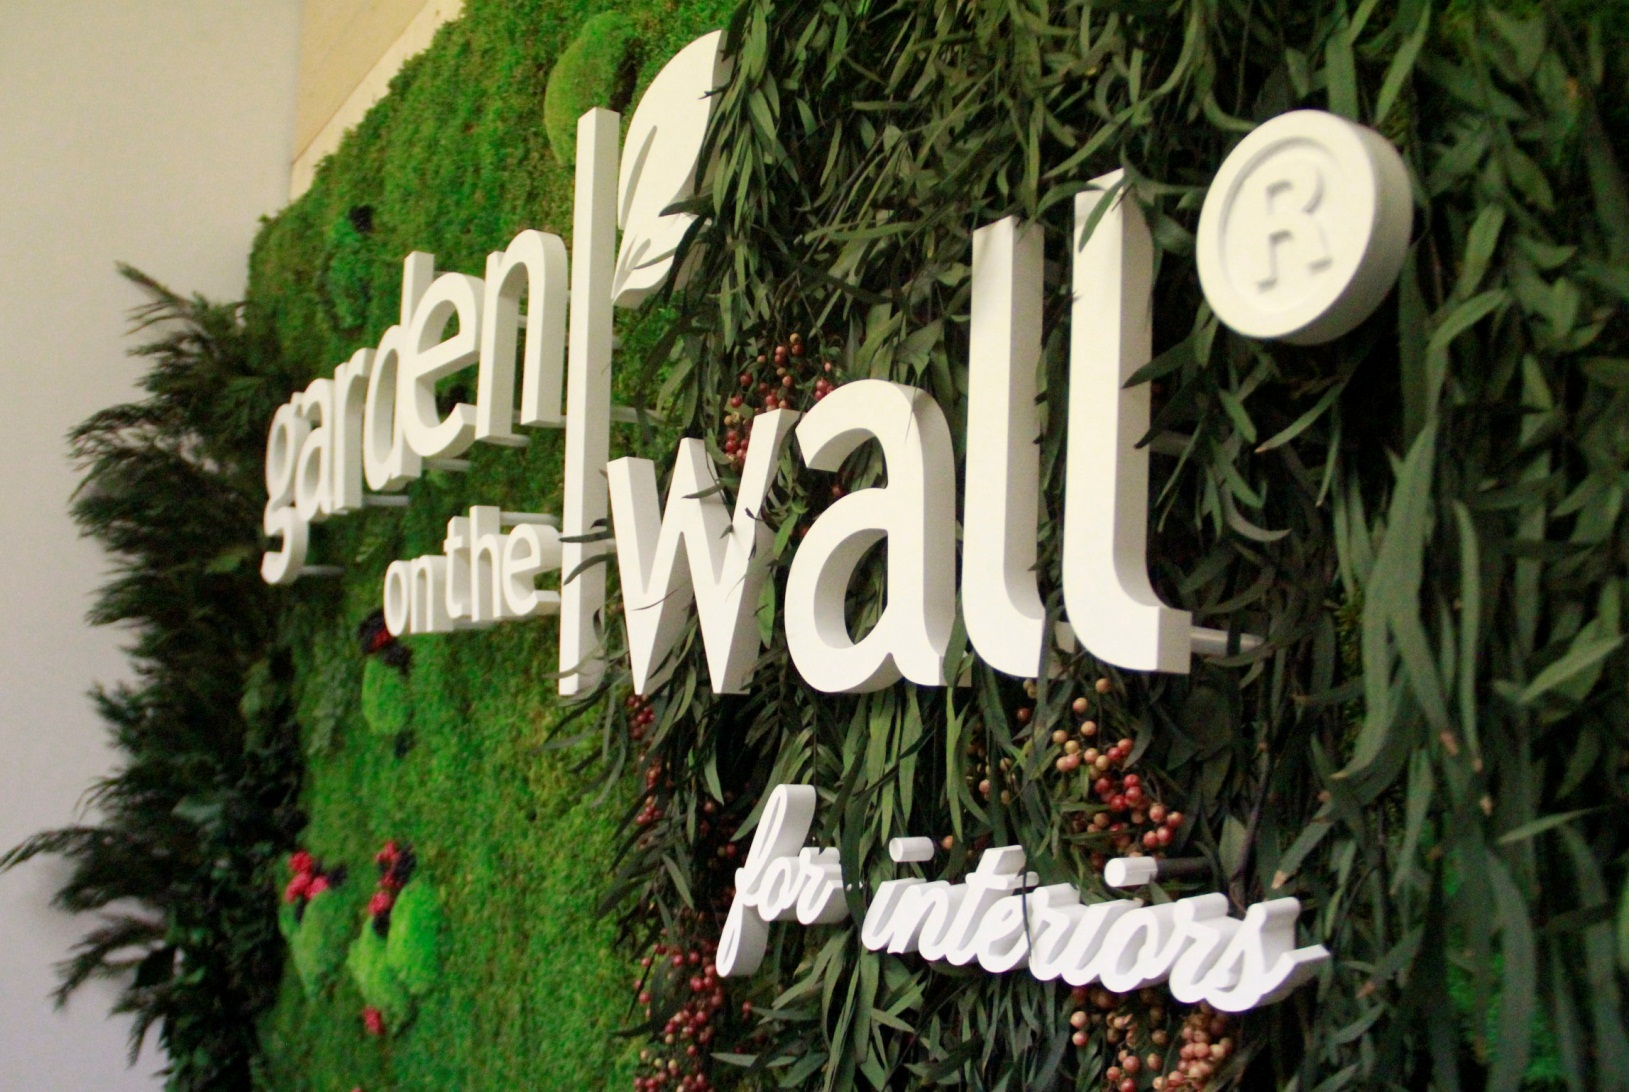 Description: S:\Field Marketing\PR & Corporate Communications\Customer Solutions Awards\2016\Entries\Kippel_Garden on the Wall\garden on the wall 11_cropped.jpg